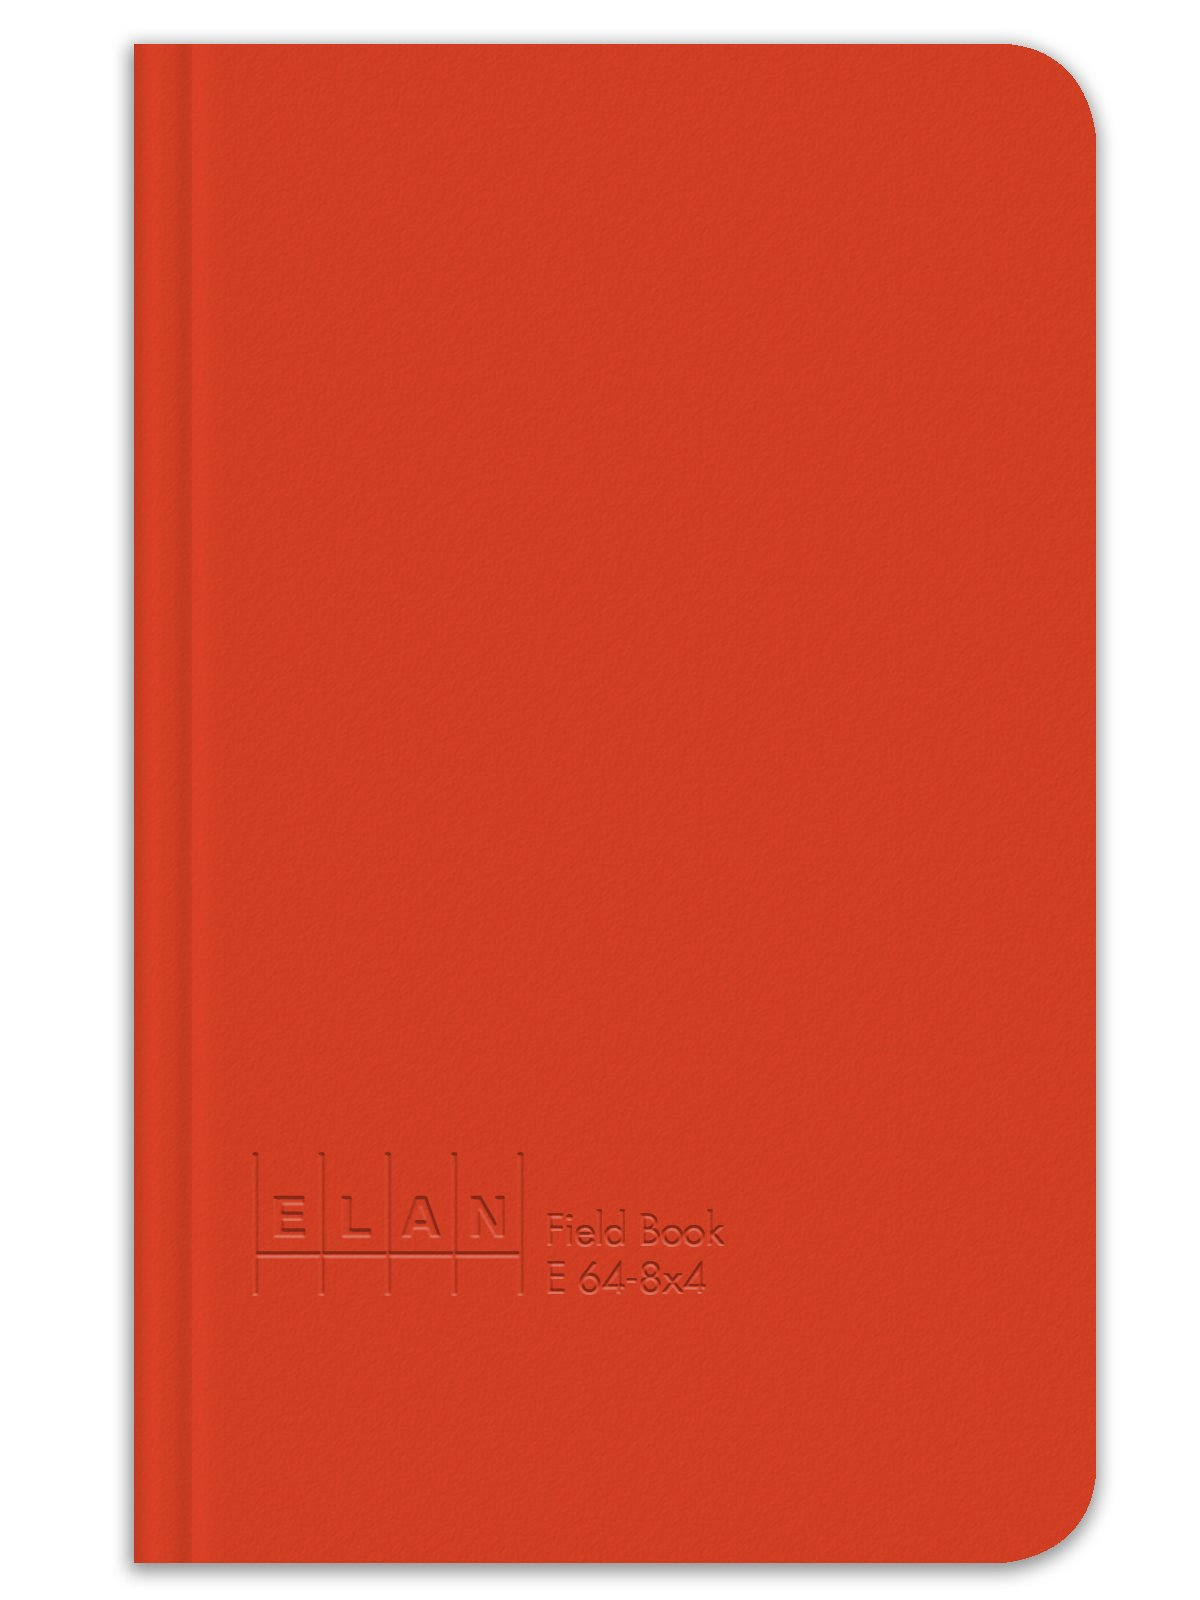 Elan Publishing Company E64-8x4 Field Surveying Book 4 ⅝ x 7 ¼, Bright Orange Cover (Pack of 48)